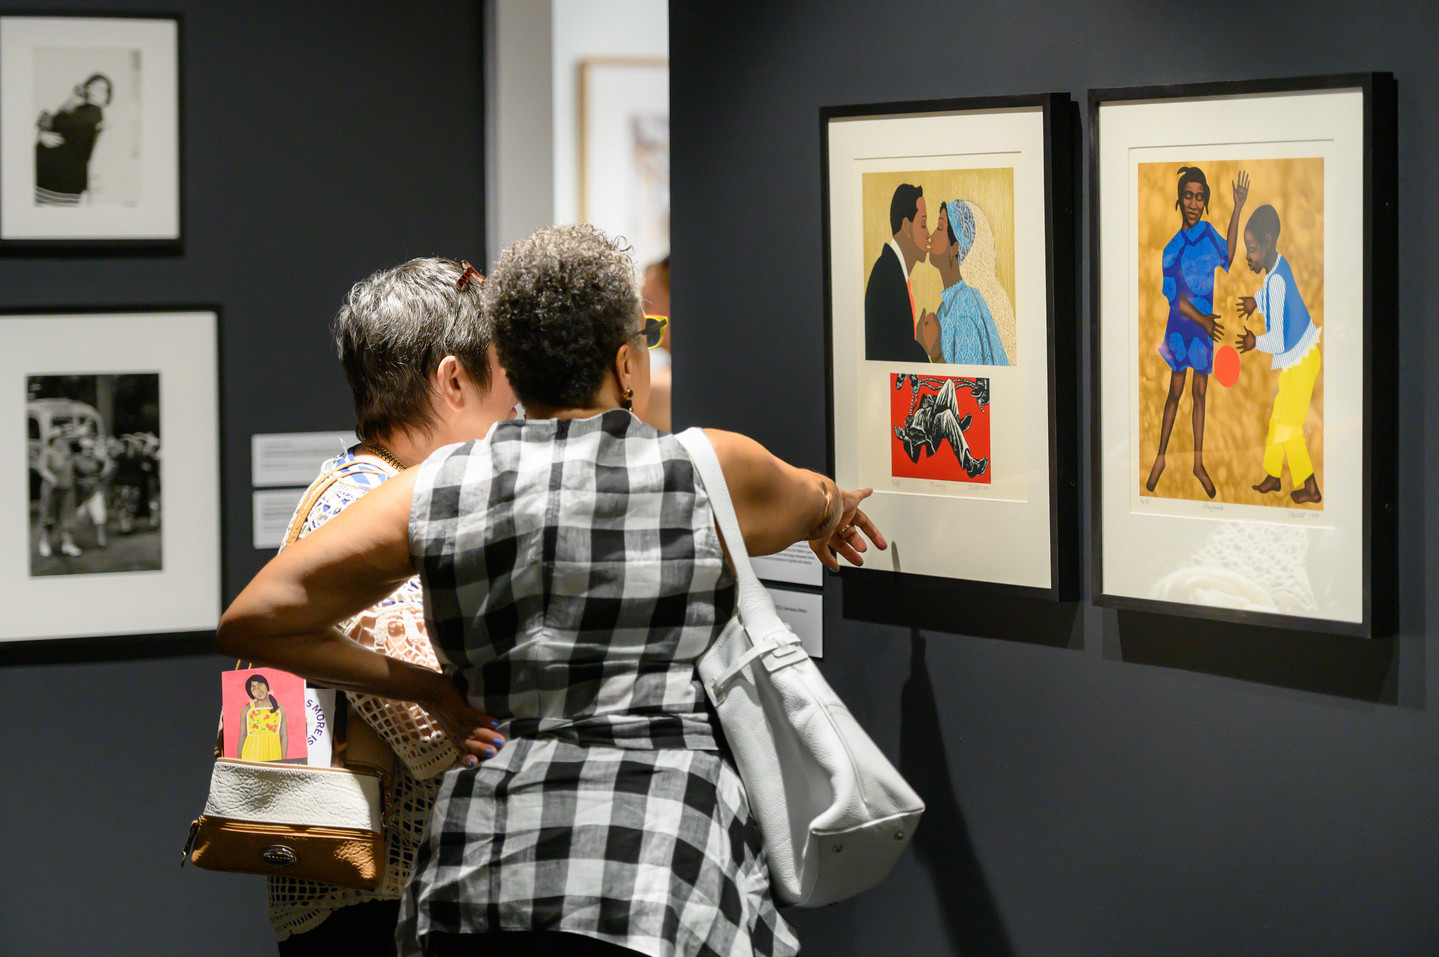 Two women with short gray hair look at brightly colored prints and point to details of the artwork.